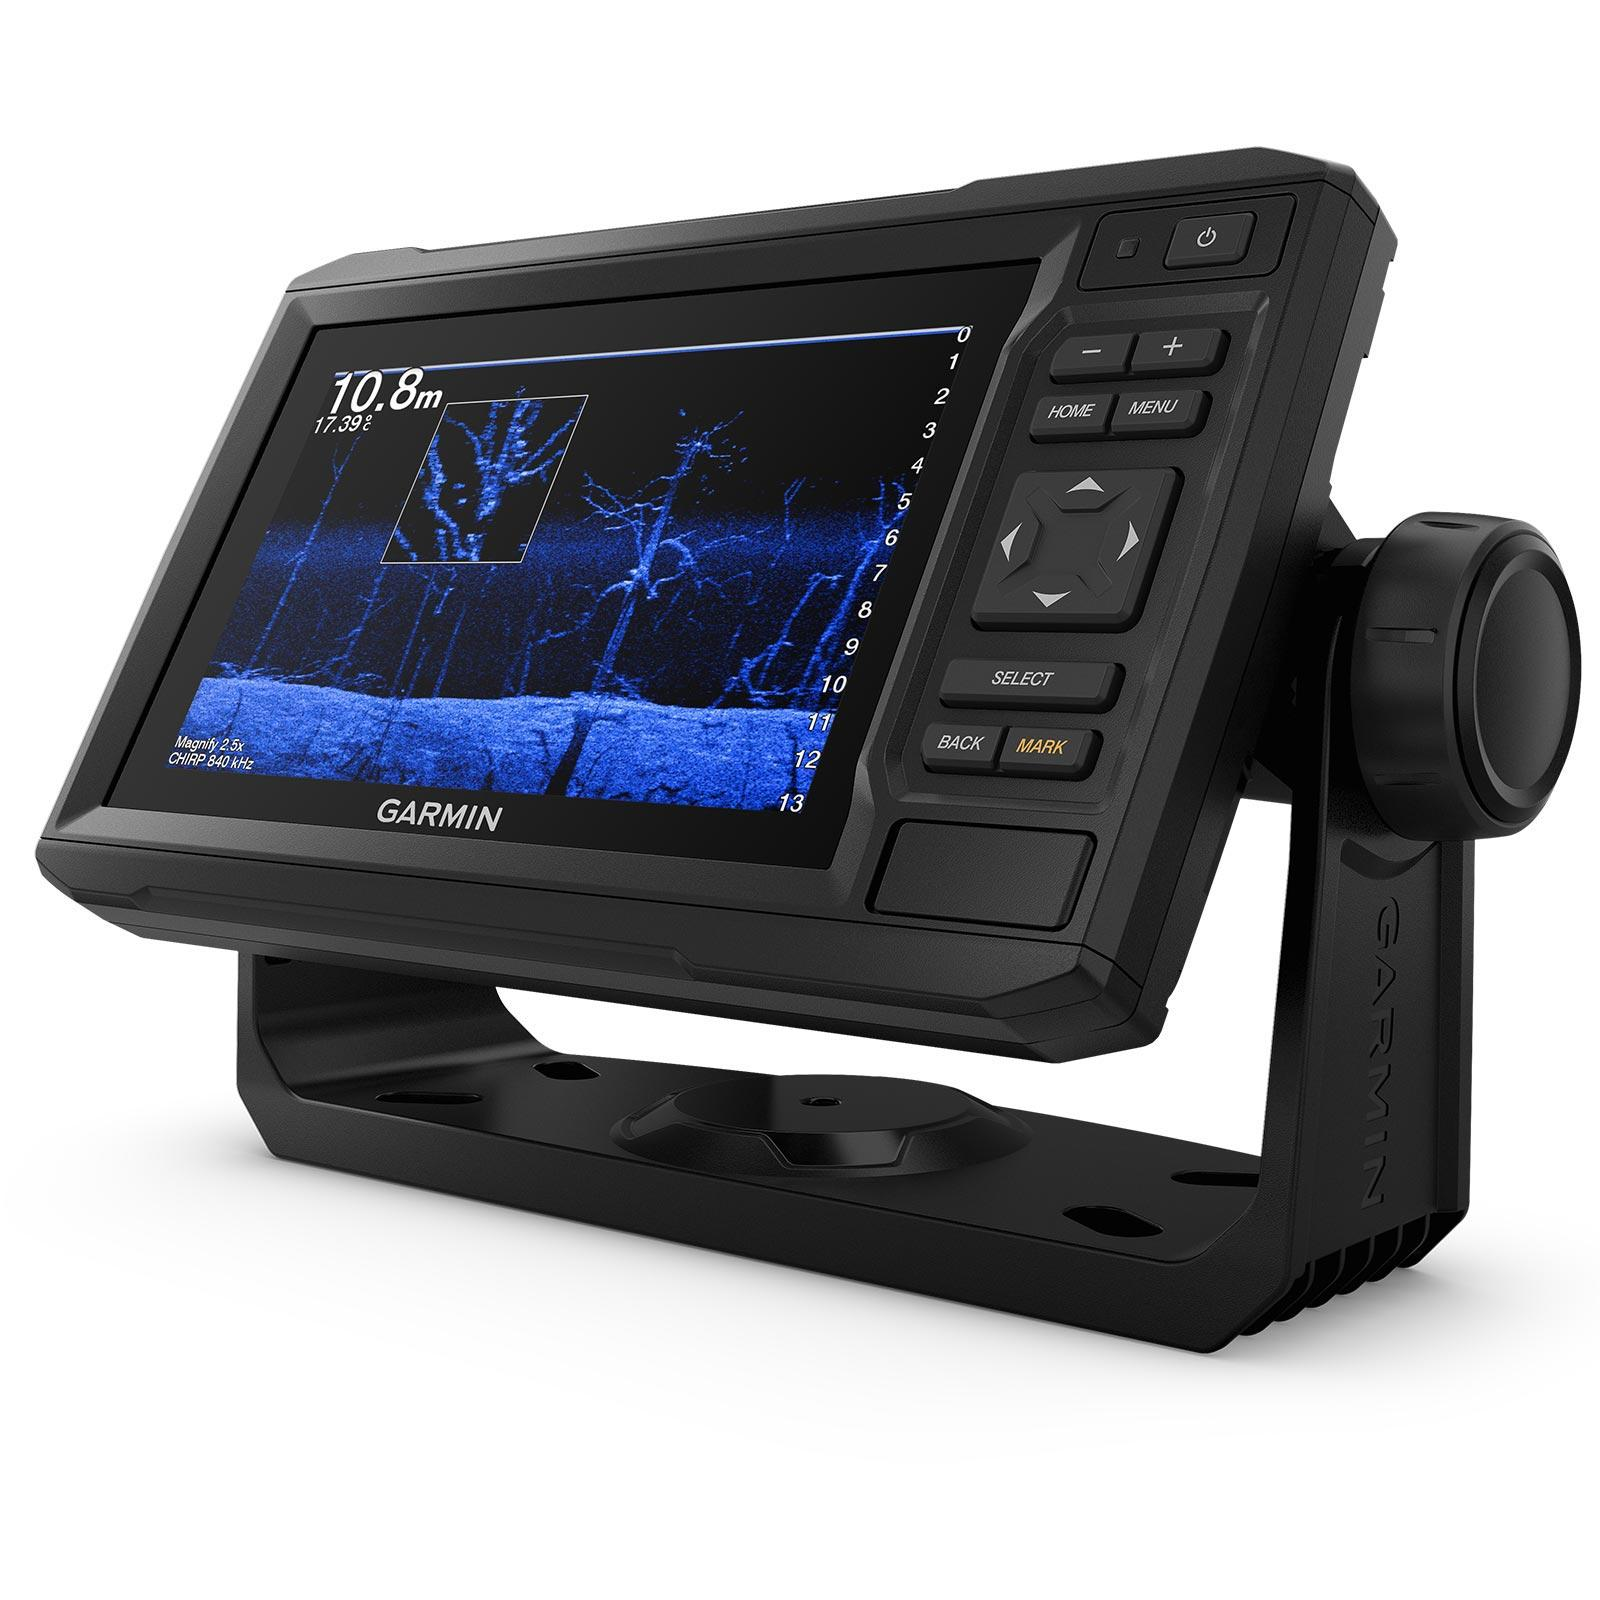 Garmin ECHOMAP UHD 62cv without Transducer Full Screen